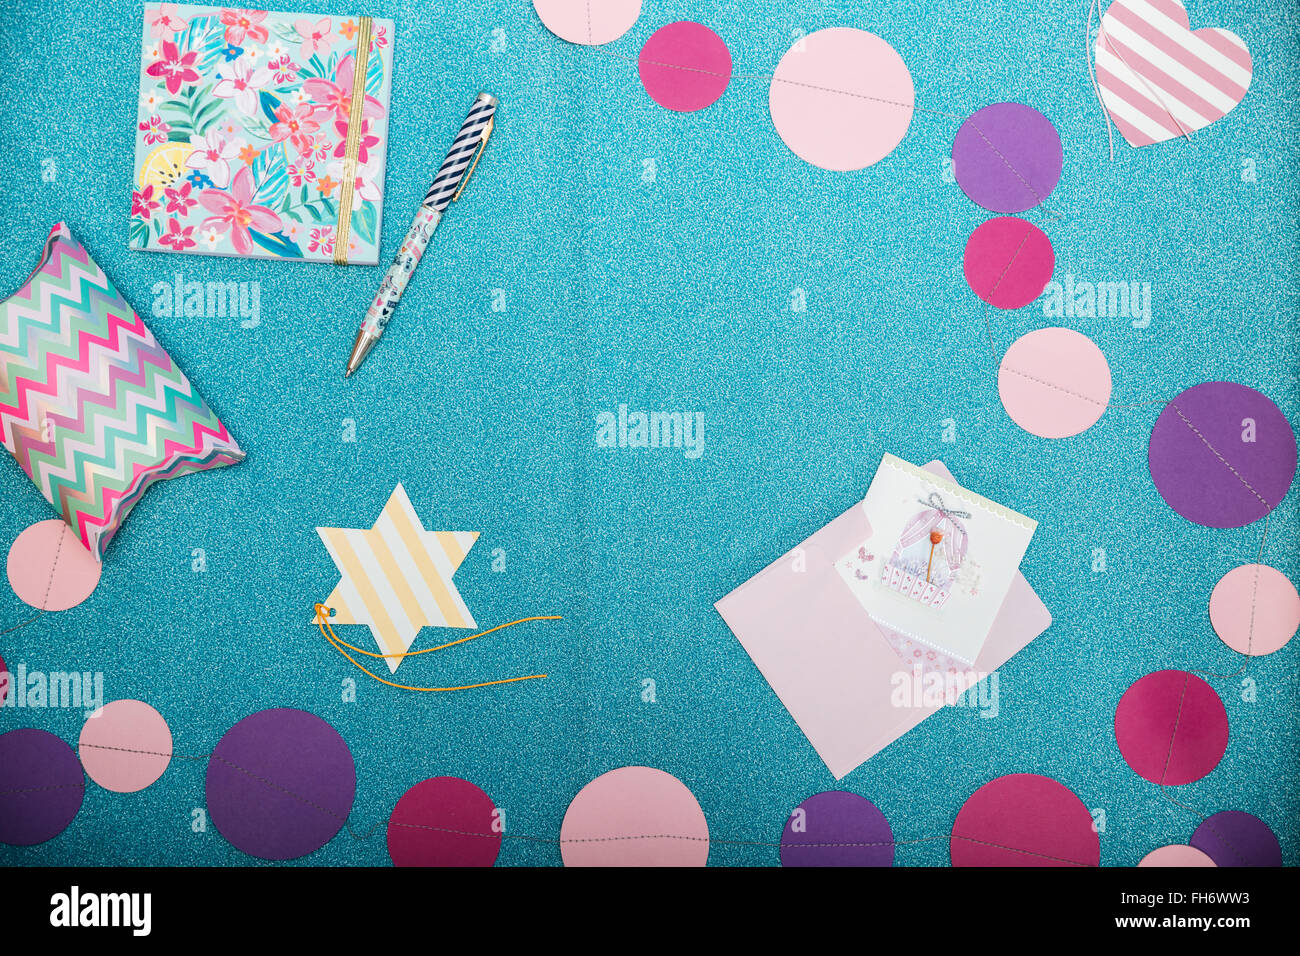 Top view of colorful decorations, notepad, pen and present box on shining turquoise backgound - Stock Image